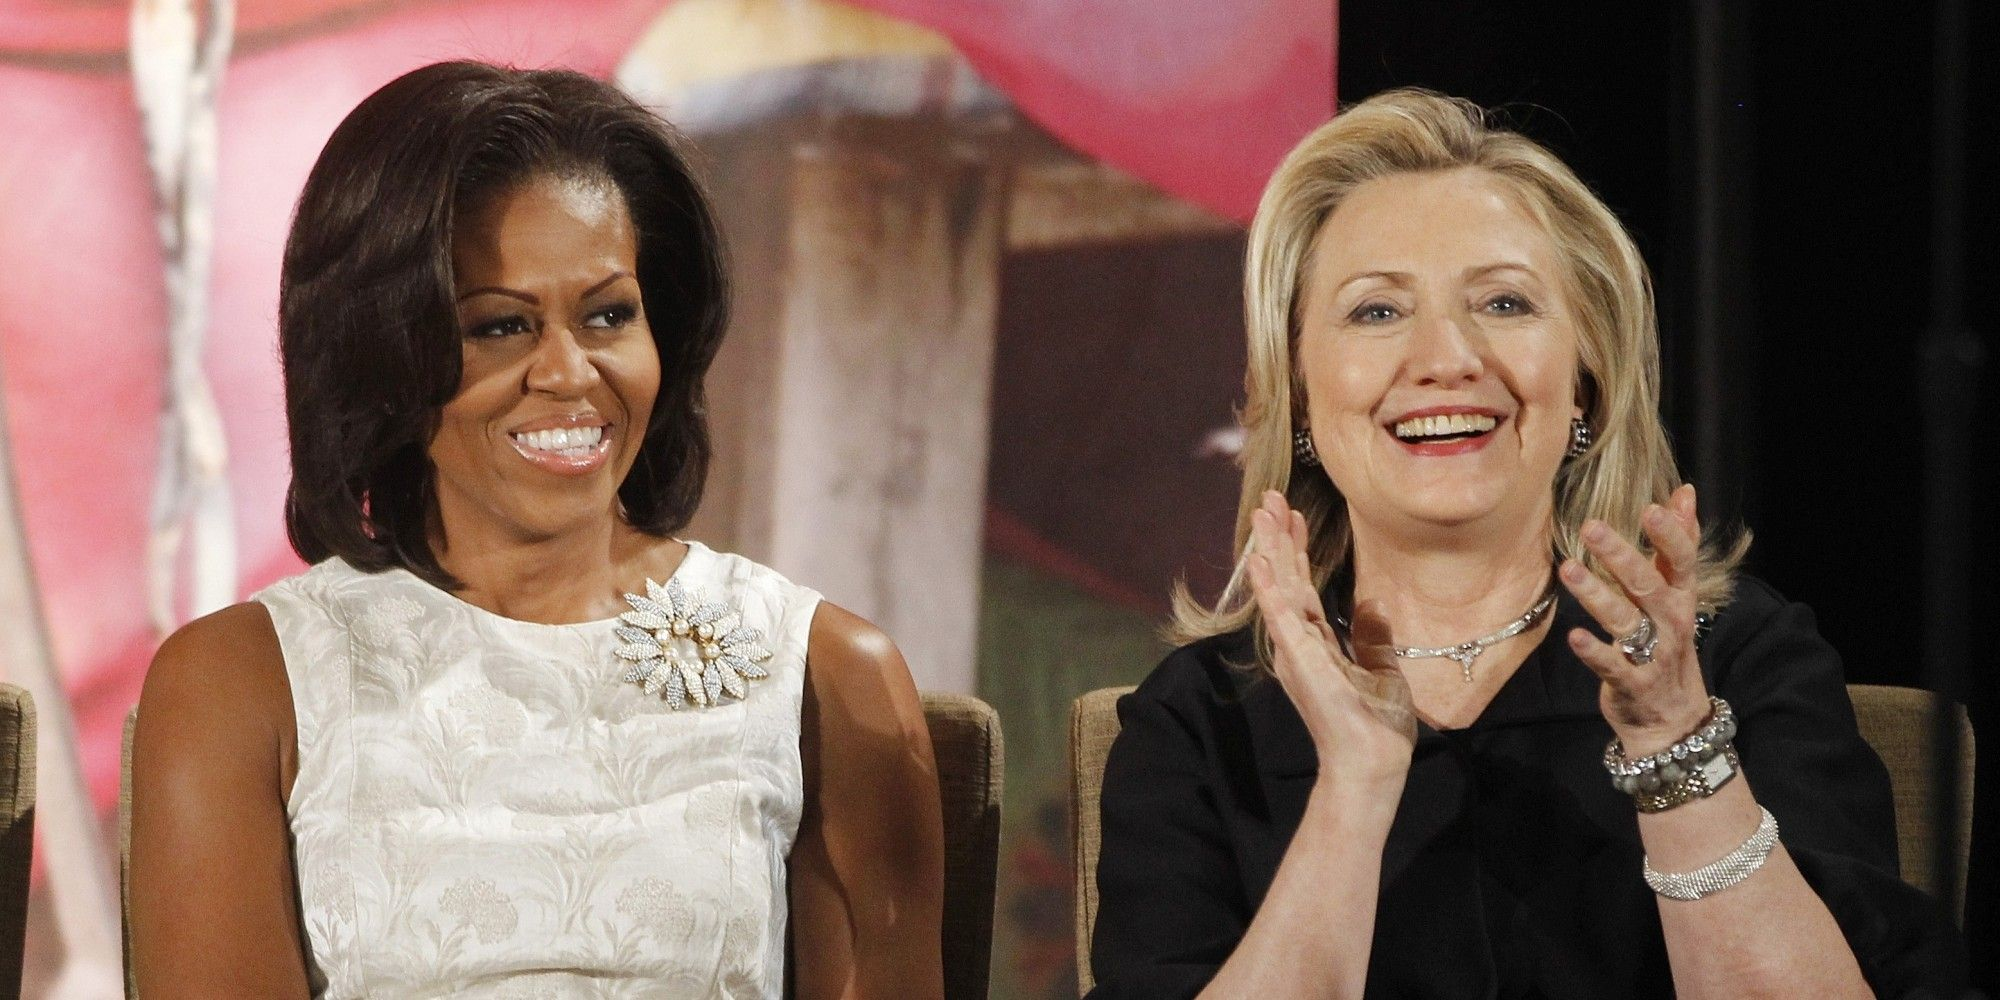 Top 20 Most Powerful Women in the World